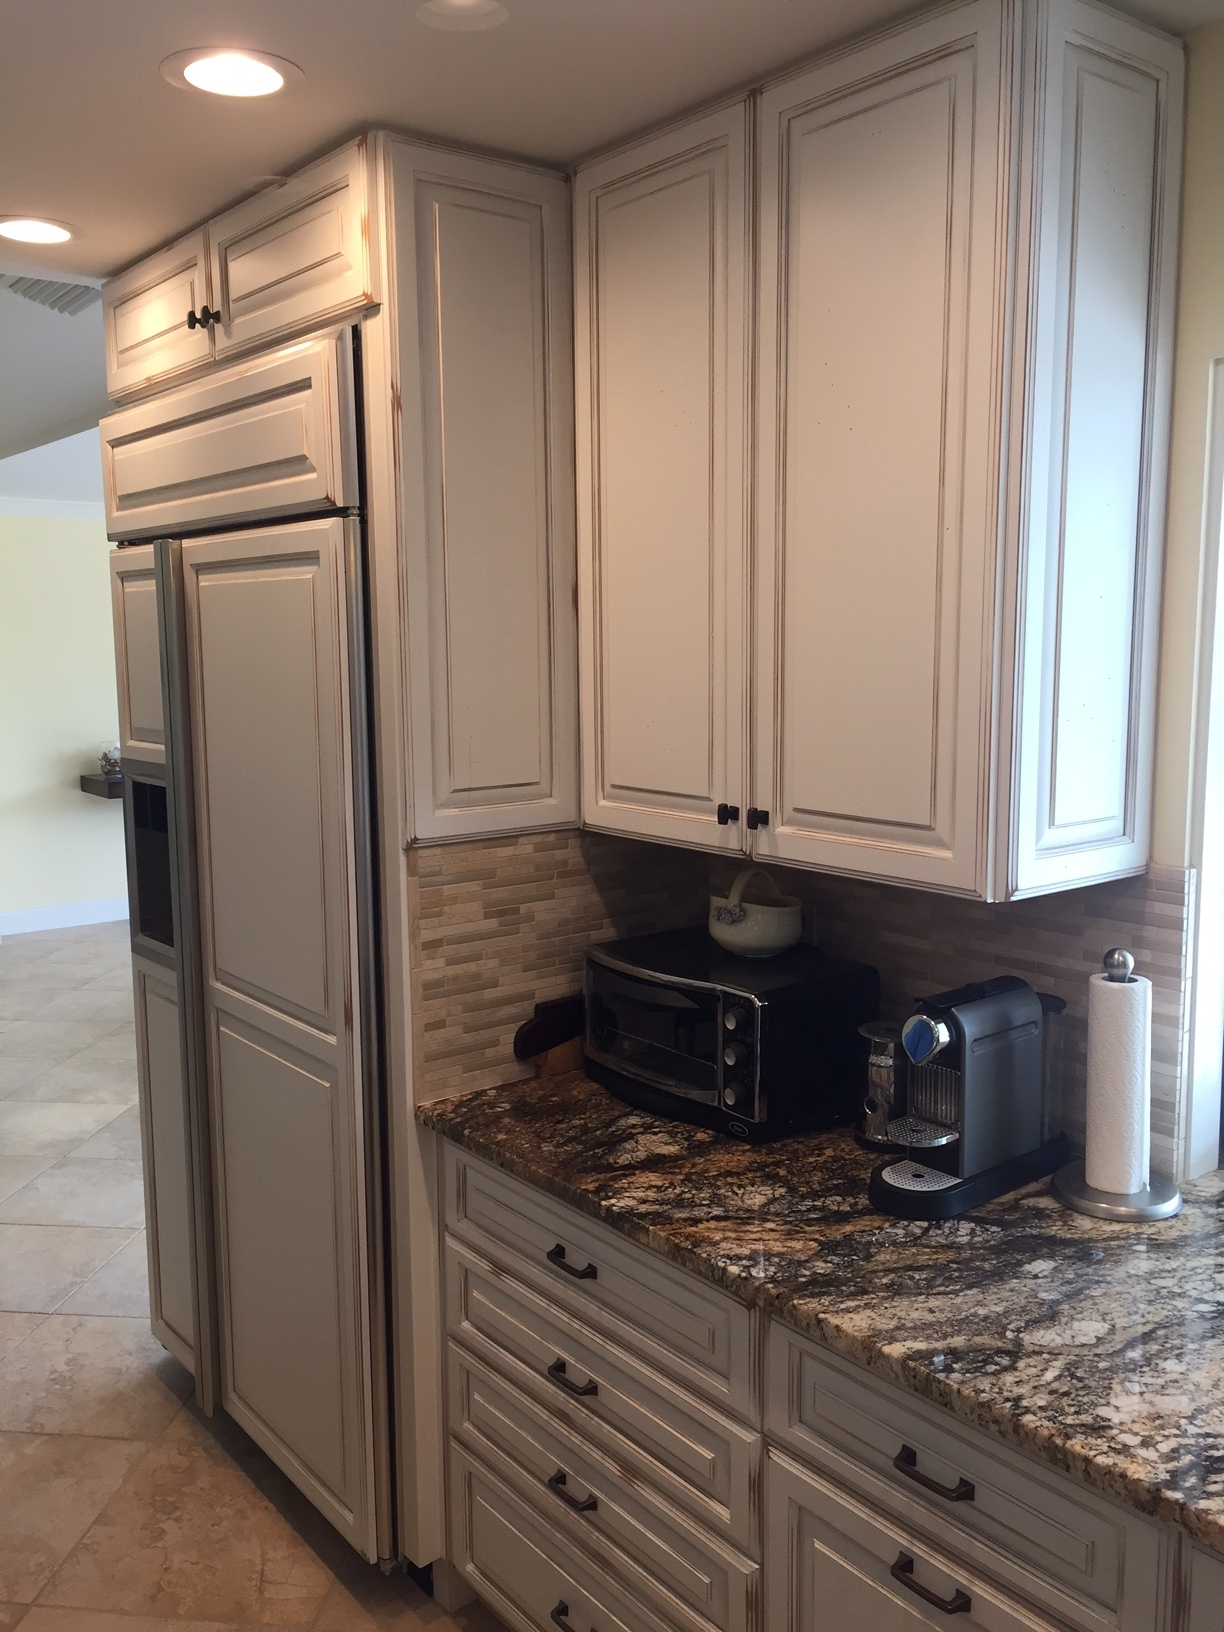 Custom Cabinets:  ontact me for your  custom kitchen cabinets  and bathroom projects.